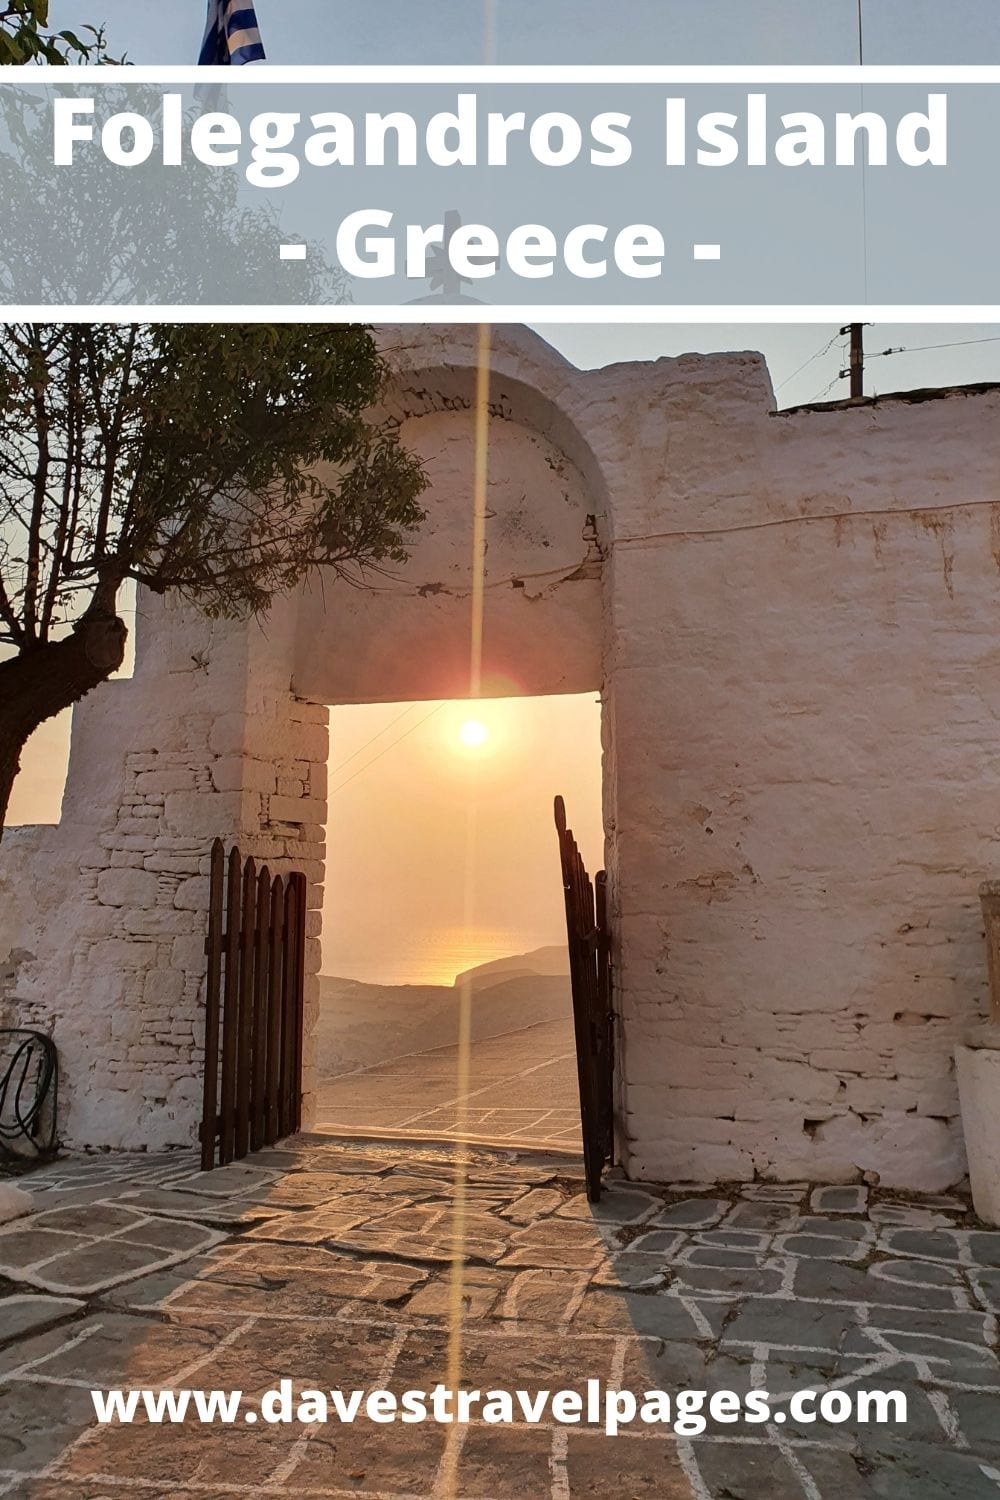 A travel guide to Folegandros Island in Greece